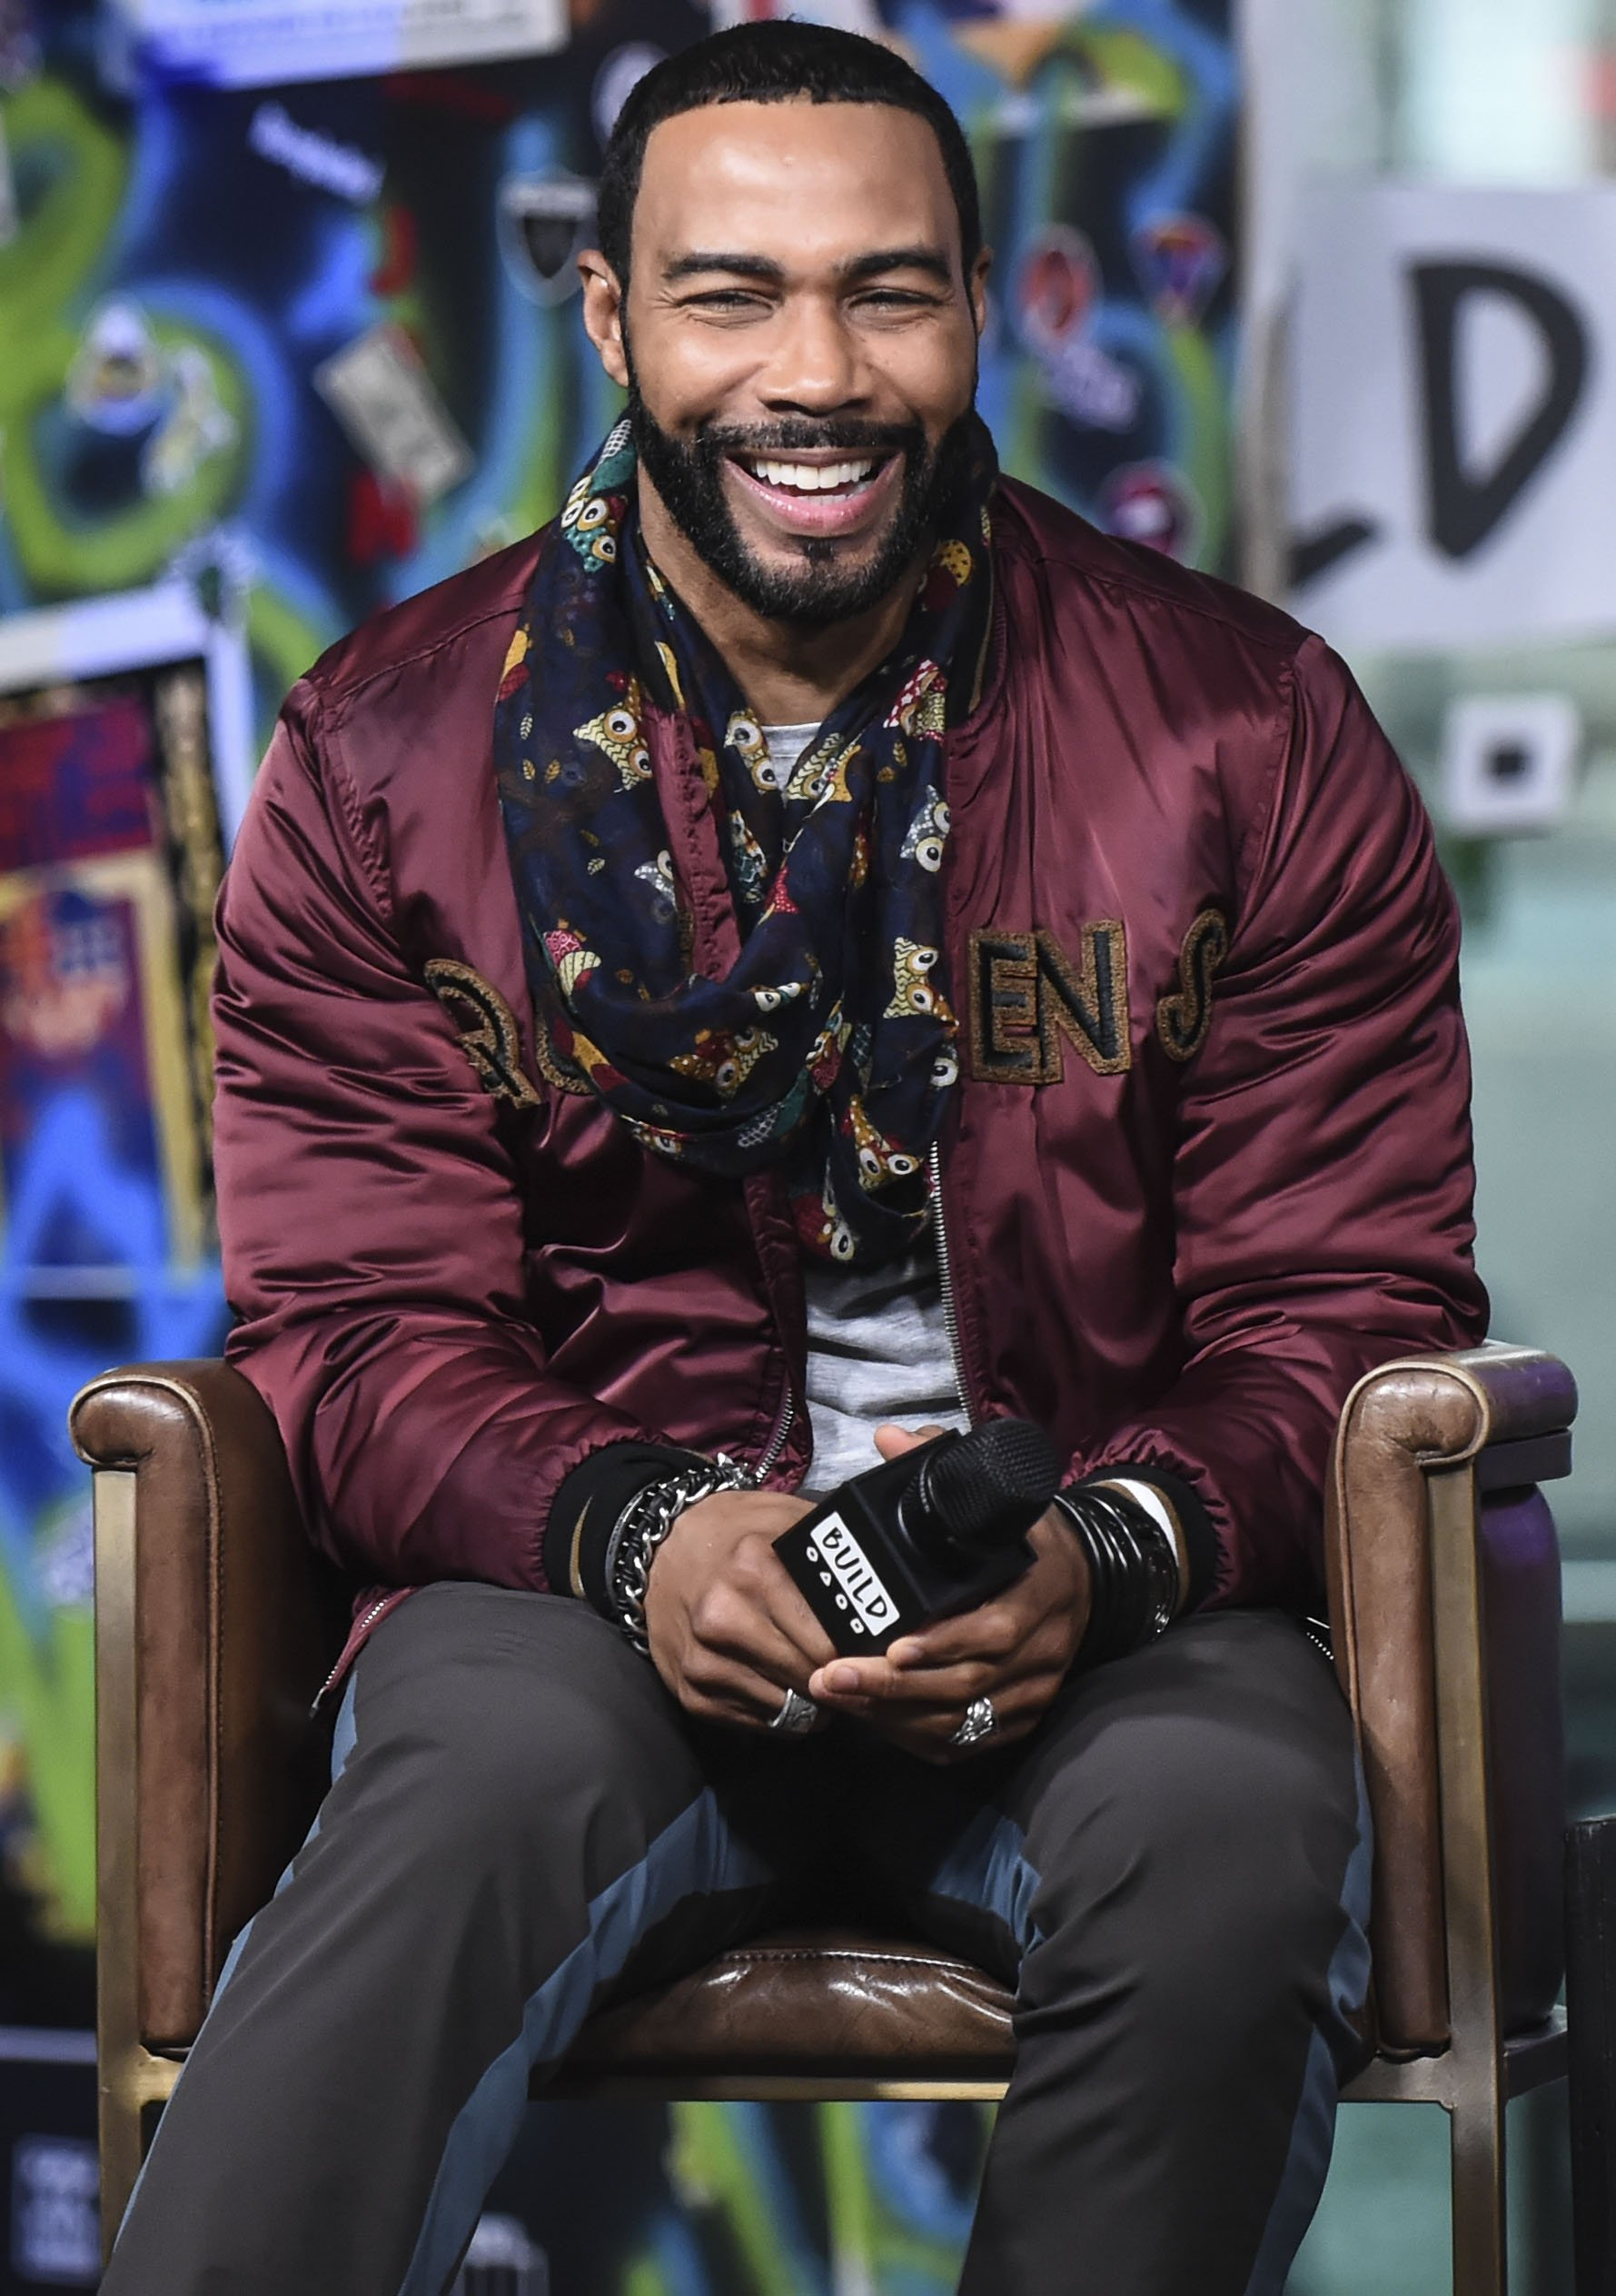 Omari Hardwick at discussing 'Nobody's Fool' at Build Studio in New York City on October 29, 2018.   Photo: Getty Images